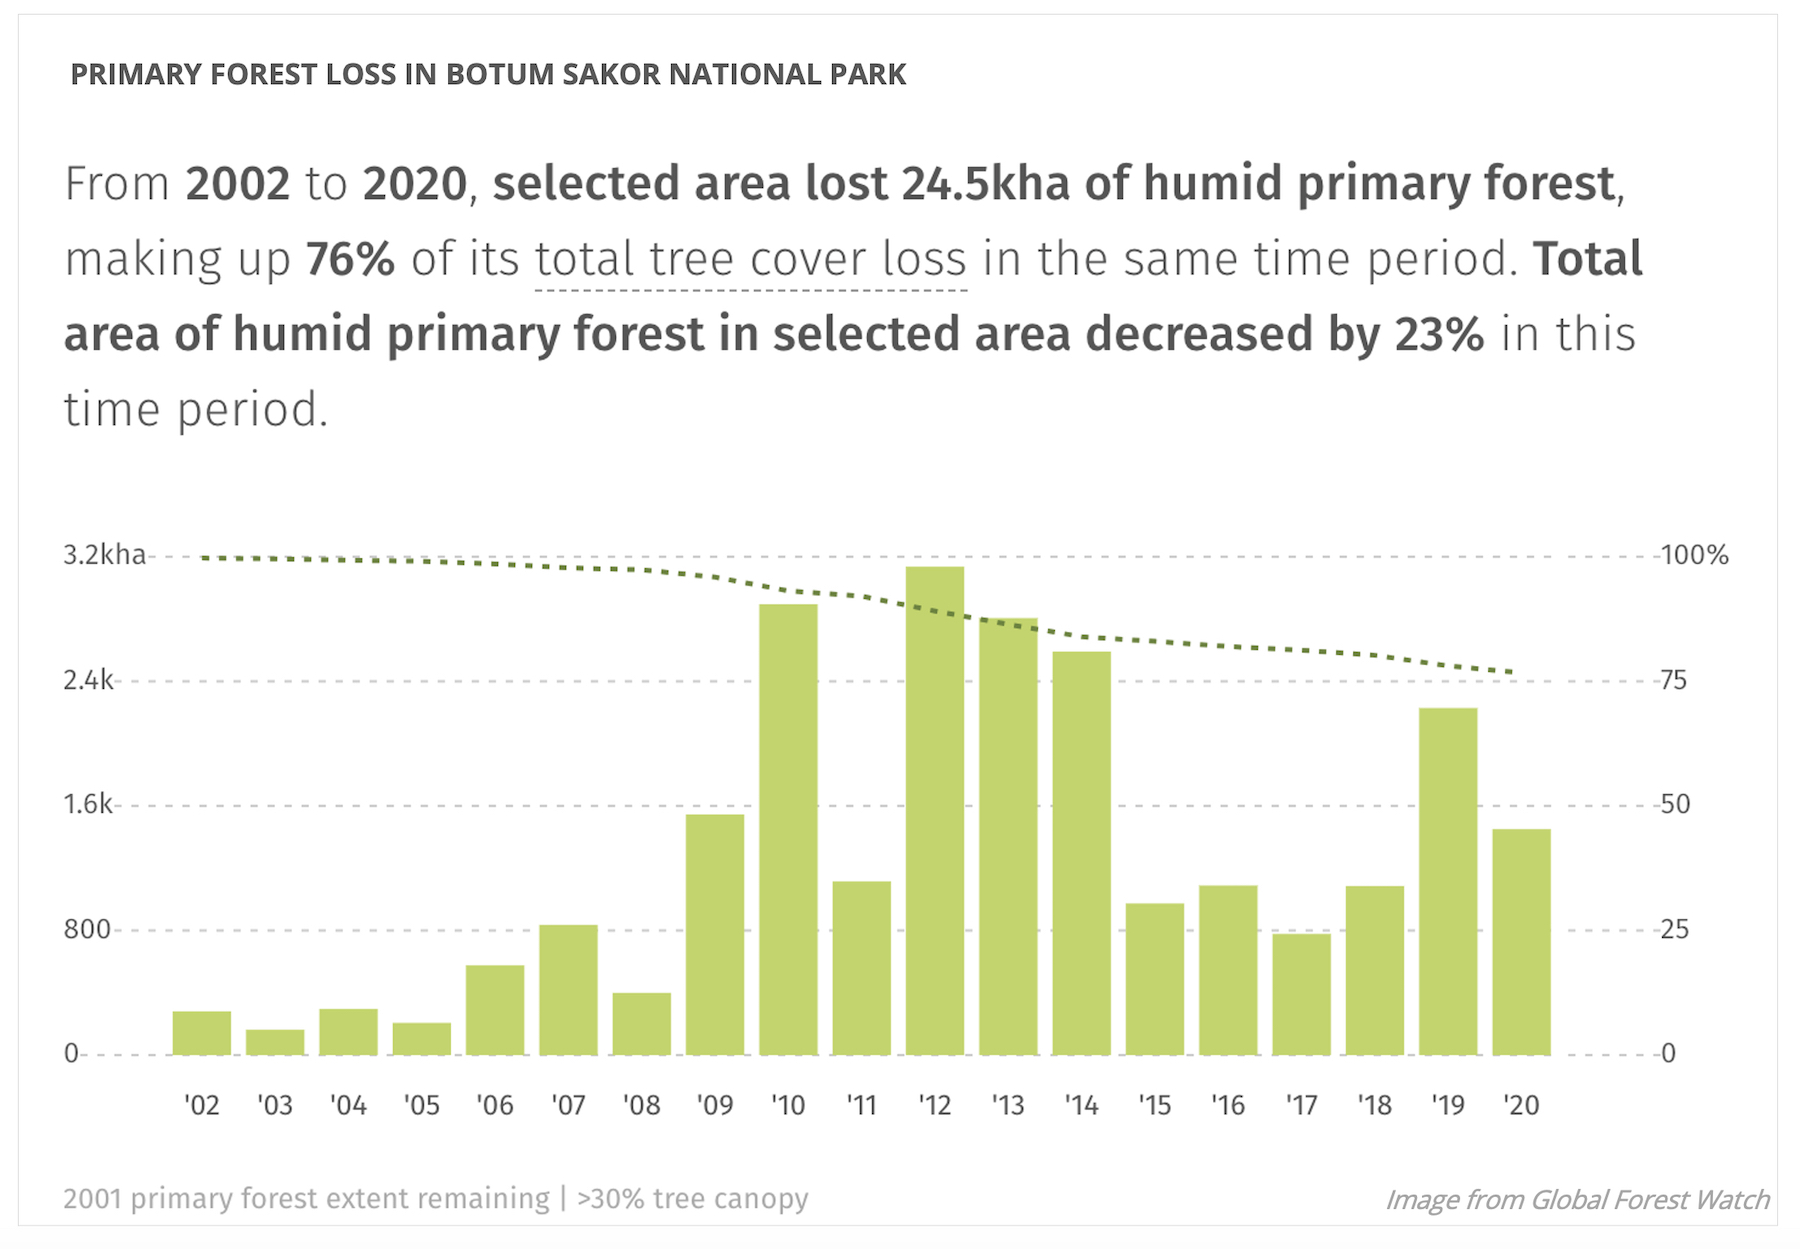 Data from the University of Maryland show deforestation of Botum Sakor National Park's primary forest peaked in 2012 before subsiding in 2015. But in 2019 the park's deforestation rate increased dramatically once again.